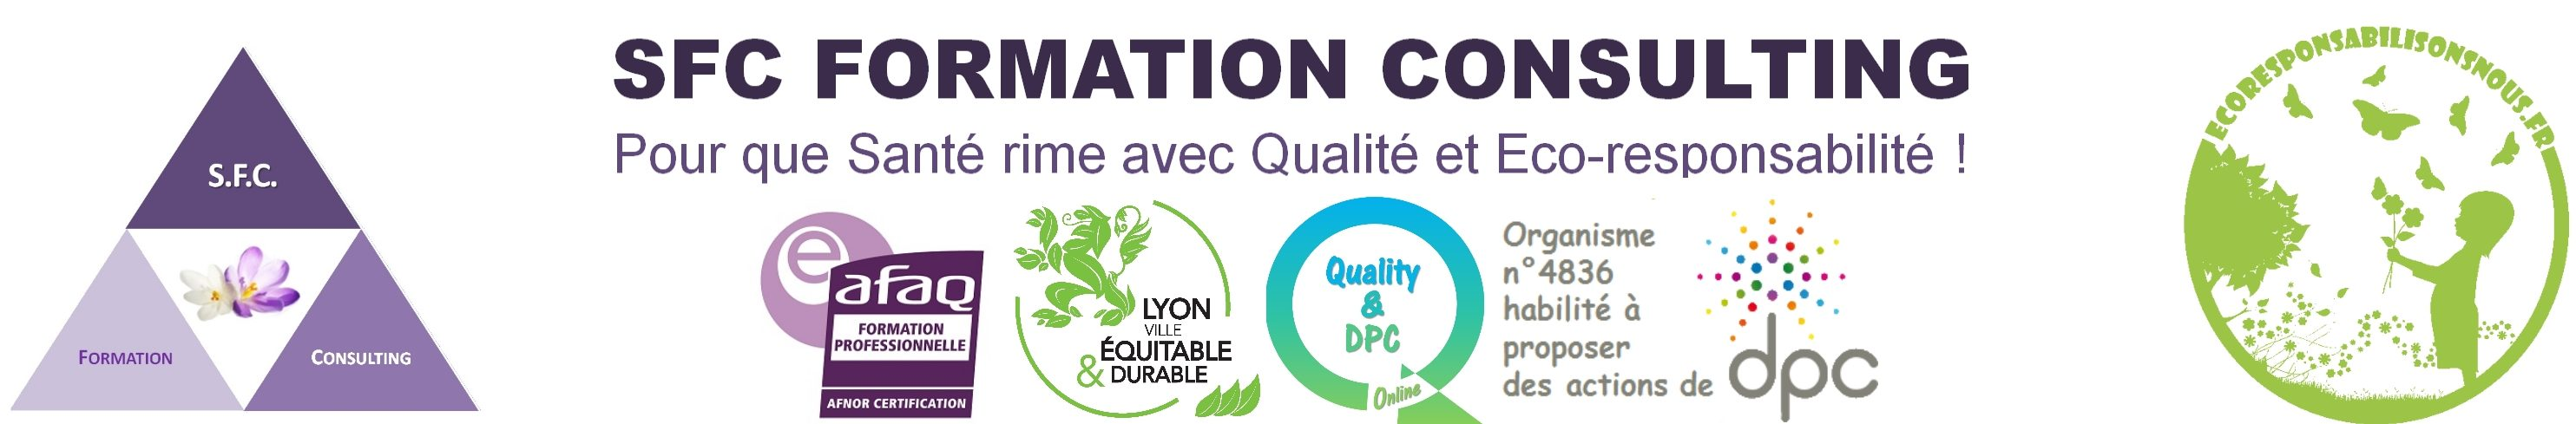 cropped-SFC-Formation-Consulting-Pharmaciens-laboratoires-Ordre-DPC-OFFICIEL3.jpg